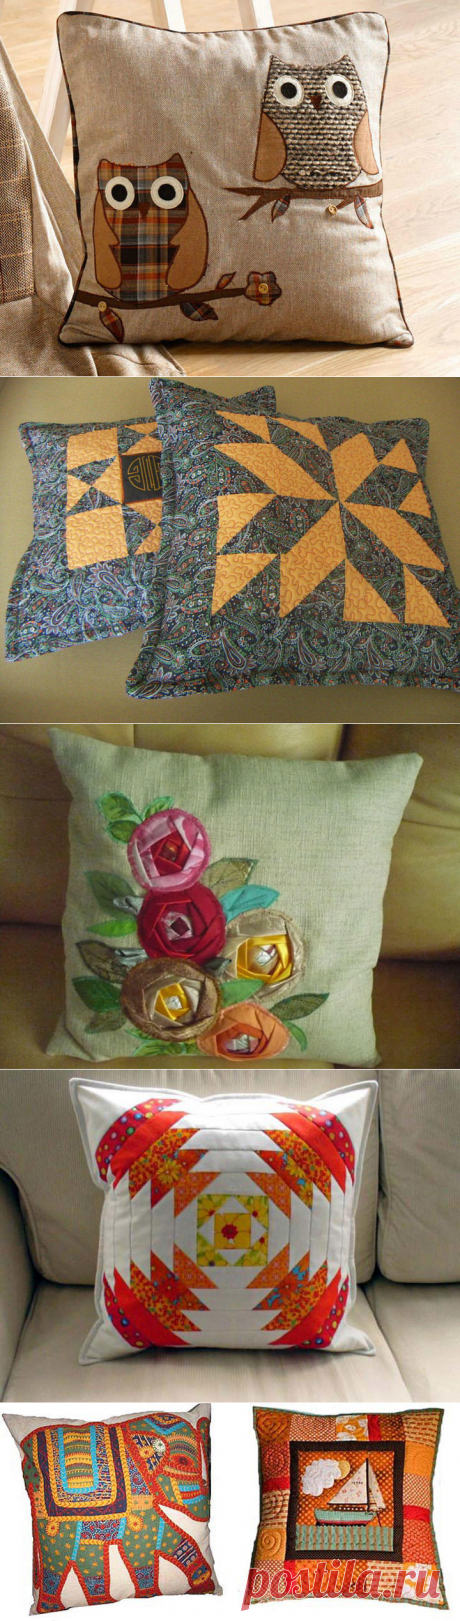 Pillow patchwork: scrappy equipment, schemes for sewing, a photo, style a patchwork the hands, ideas of a pillowcase, decorative cushions, video